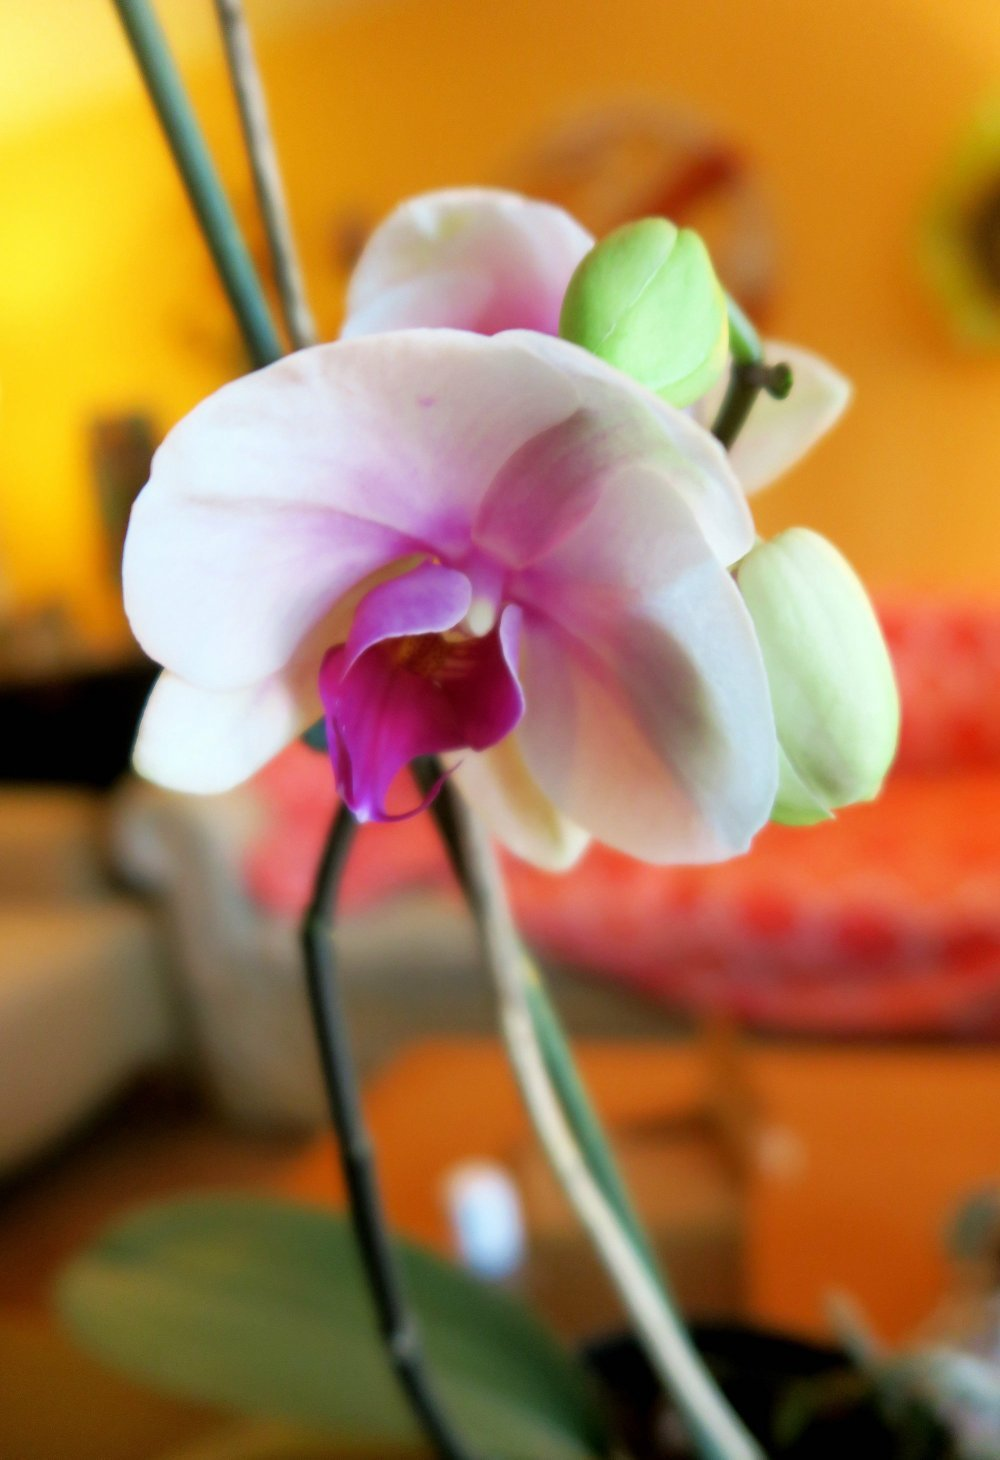 Phalaenopsis orchids will re-bloom if given the relatively easy care the plants require to thrive indoors..Special to the Democrat-Gazette/JANET B. CARSON